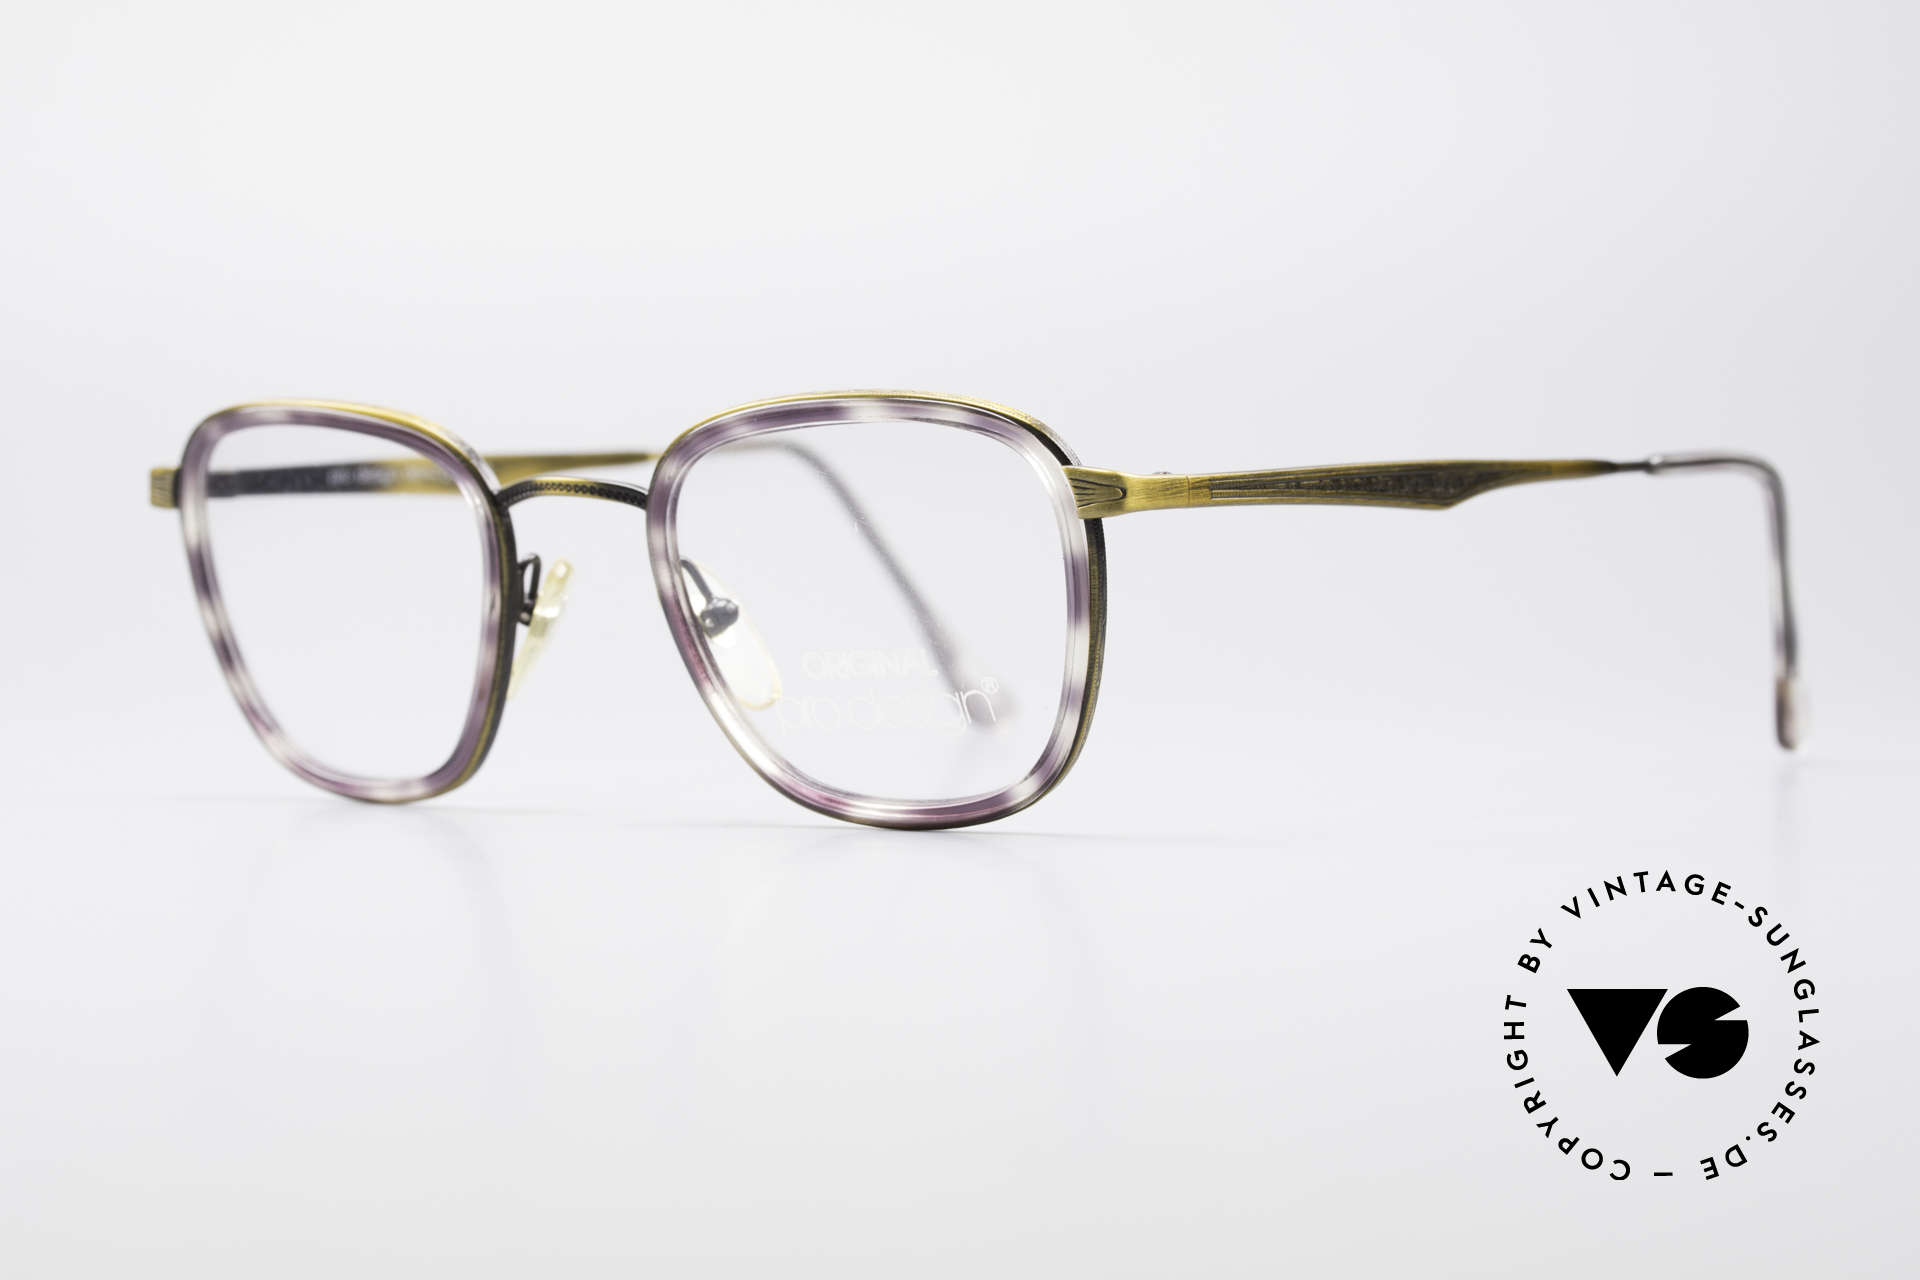 ProDesign Denmark Club 88A Vintage Glasses, bridge and metal temples with costly engravings, Made for Men